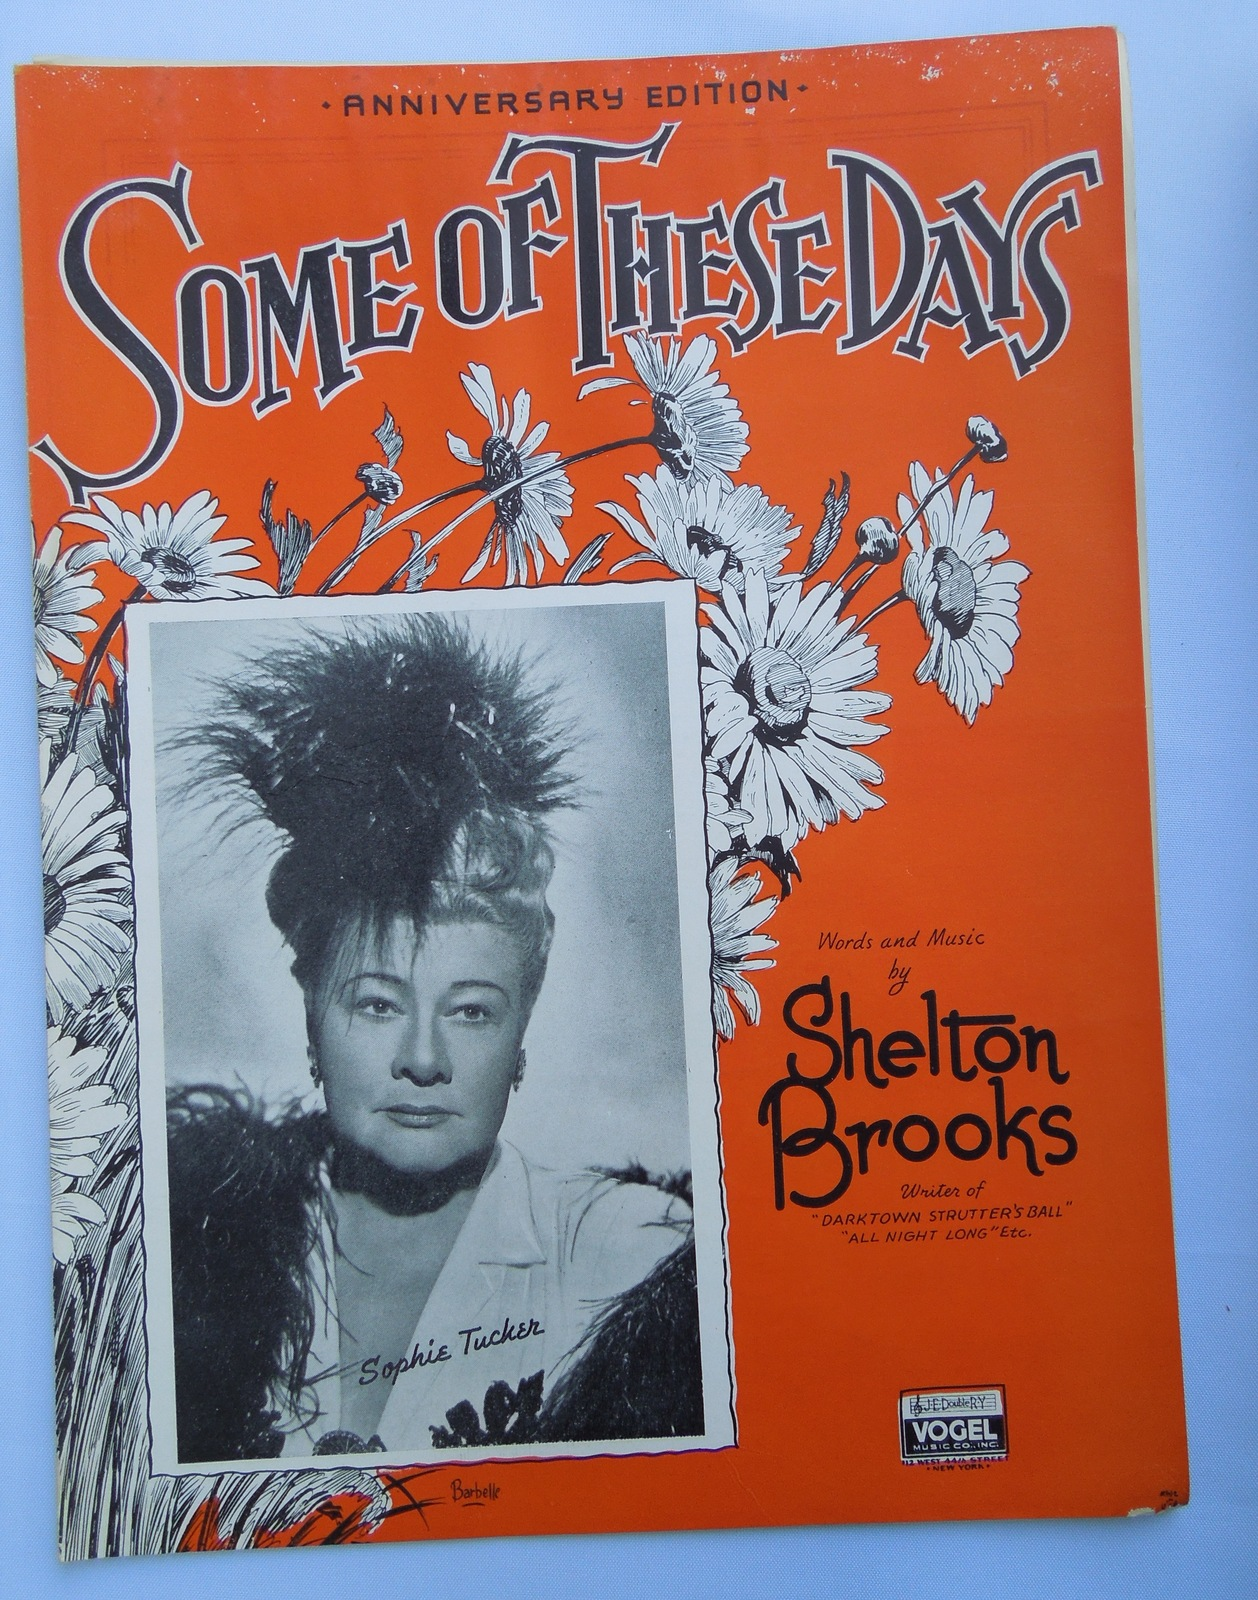 25 1937 some of these days by shelton brooks   photo featuring sophie tucker   cr 6 pgs plus advertising insert 9x12 cond. g mild gen wear and slight damage from previous moisture pd .50 06 12  7769